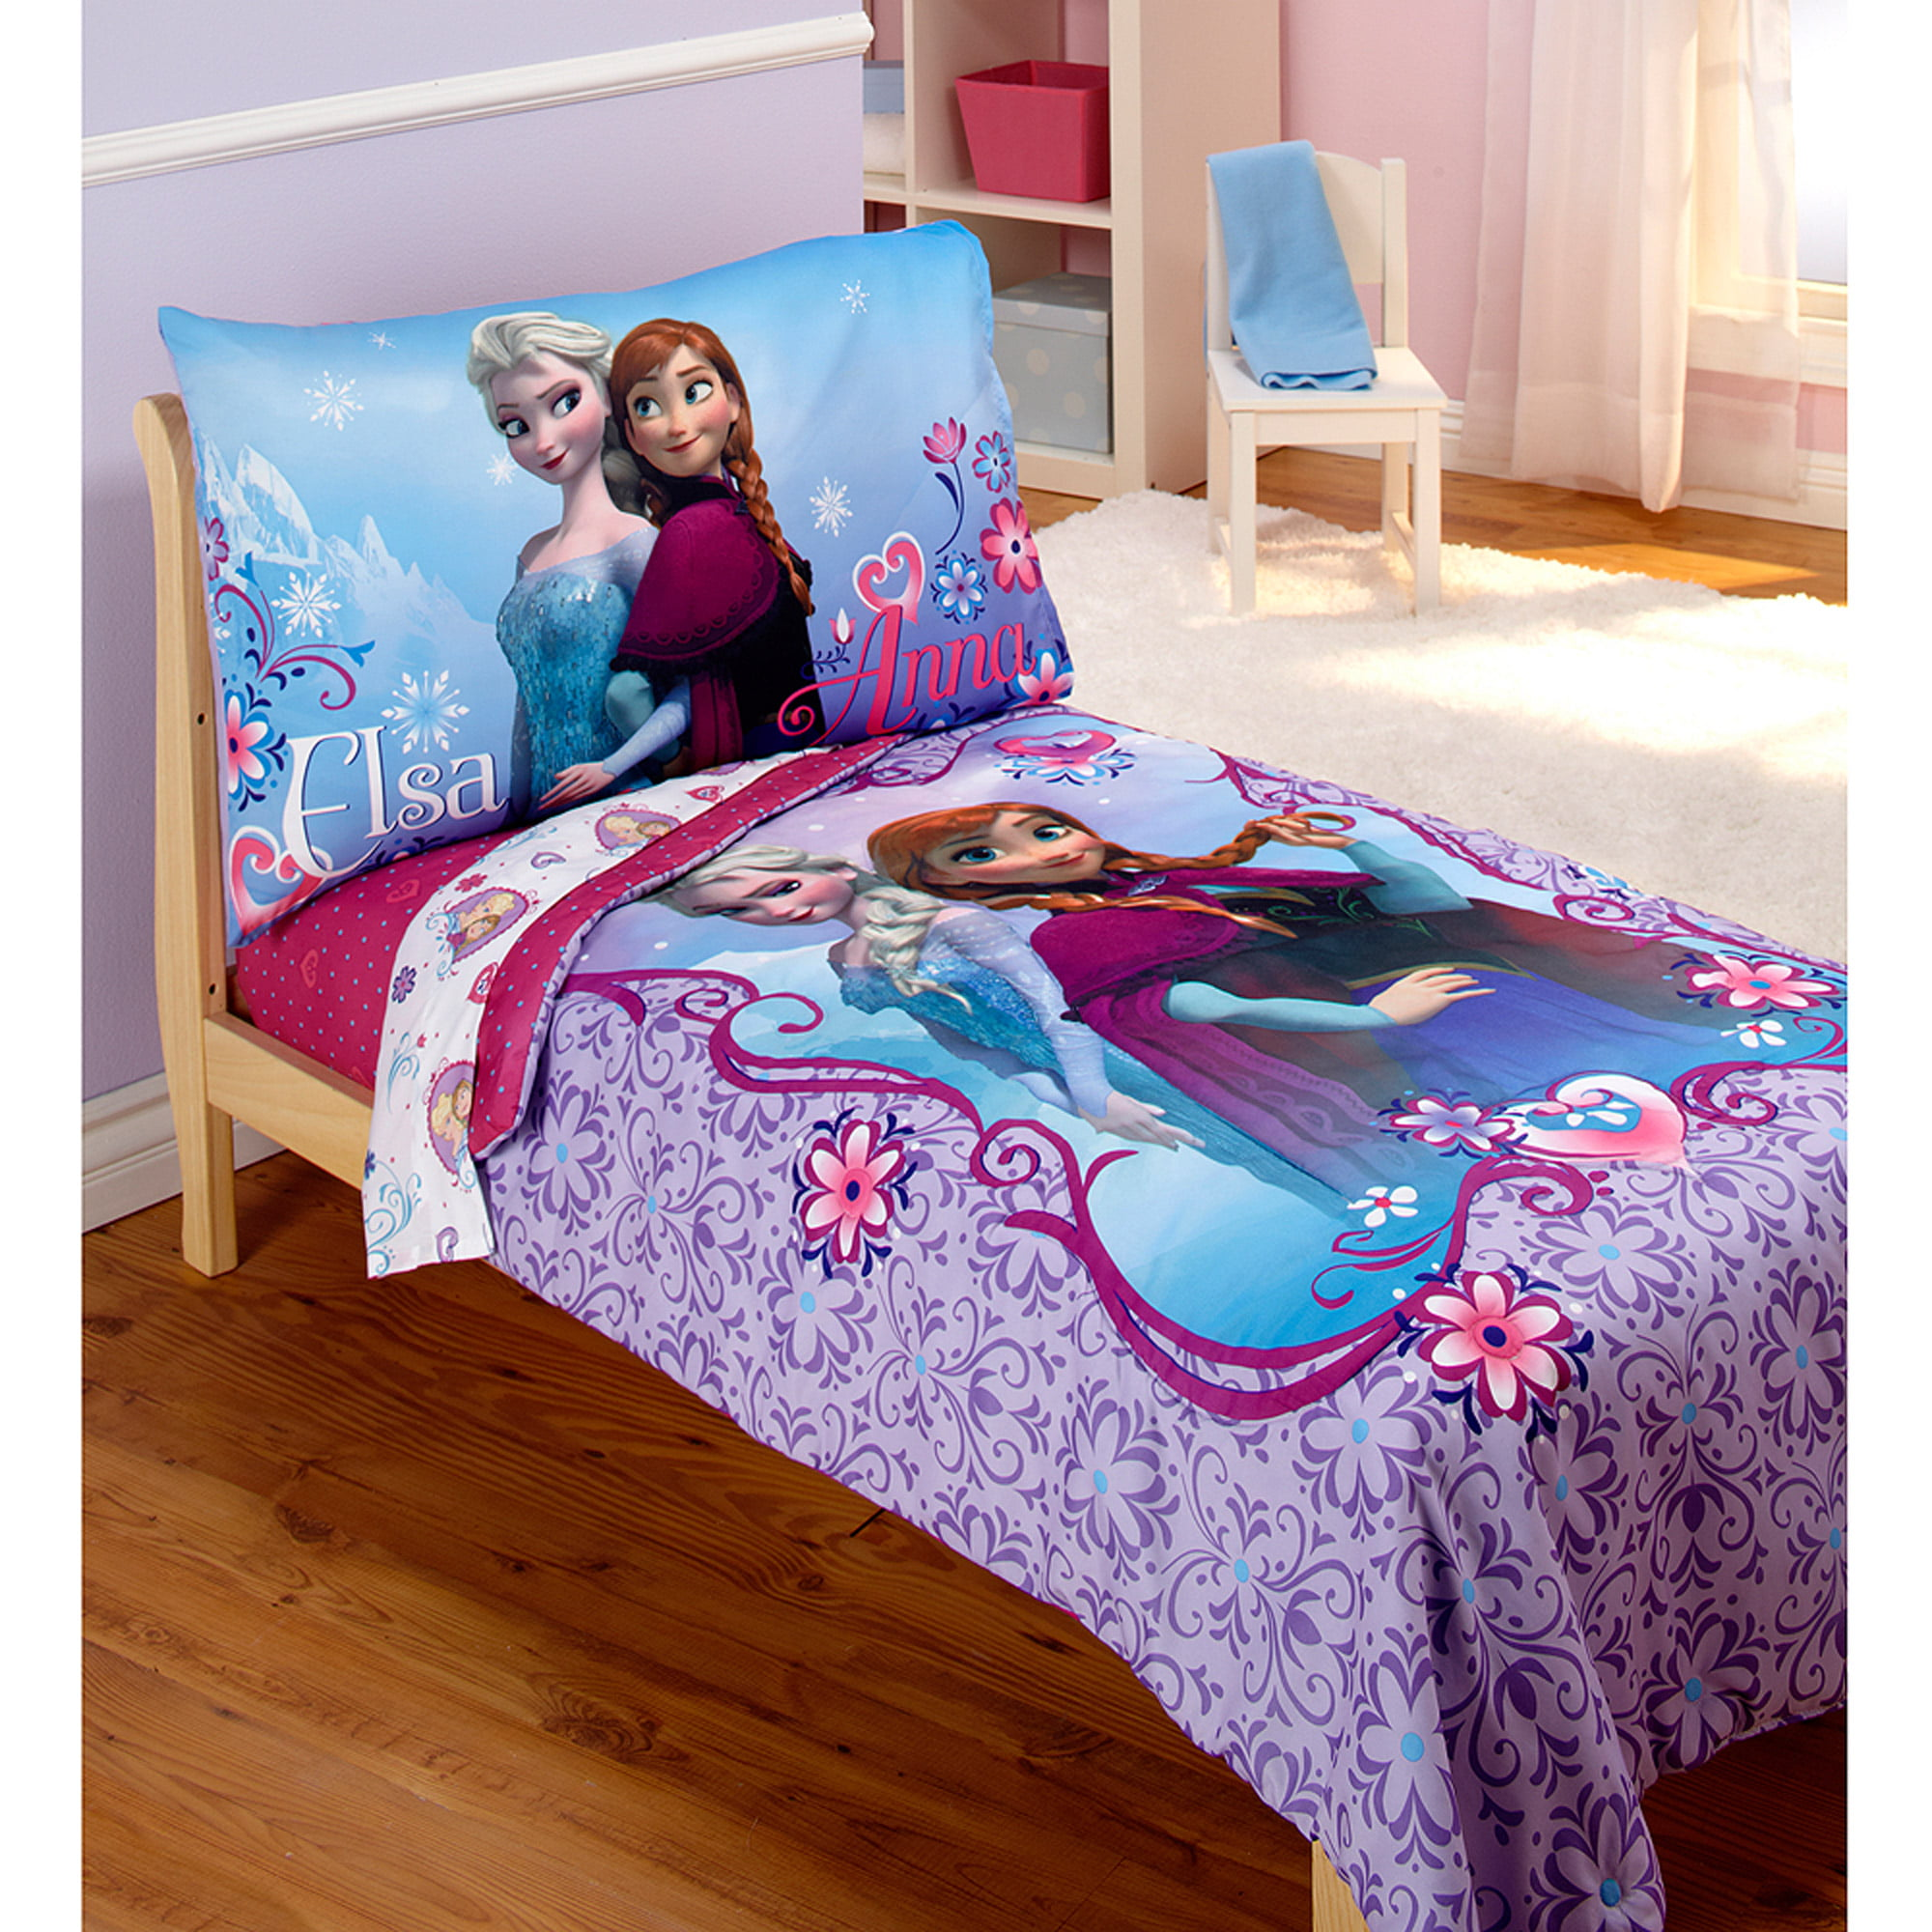 Design Princess Bedding disney sofia the first 3pc toddler bedding set with bonus matching pillow case walmart com